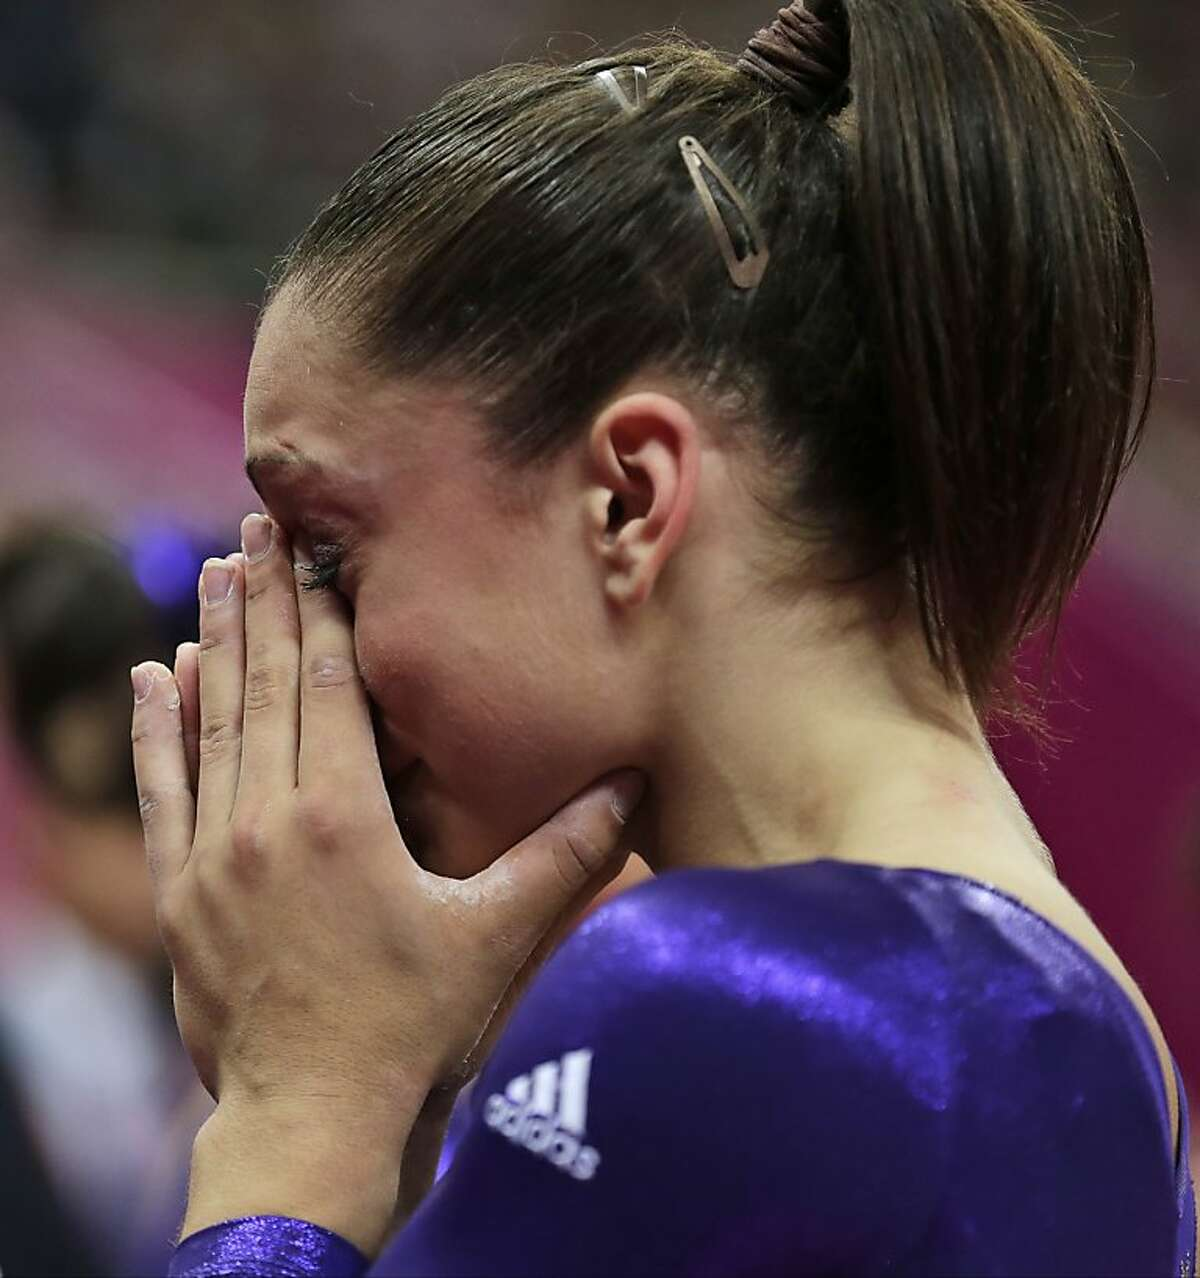 U.S. gymnast Jordyn Wieber cries after she failed to qualify for the women's all-around finals during the Artistic Gymnastics women's qualification at the 2012 Summer Olympics, Sunday, July 29, 2012, in London. (AP Photo/Gregory Bull)